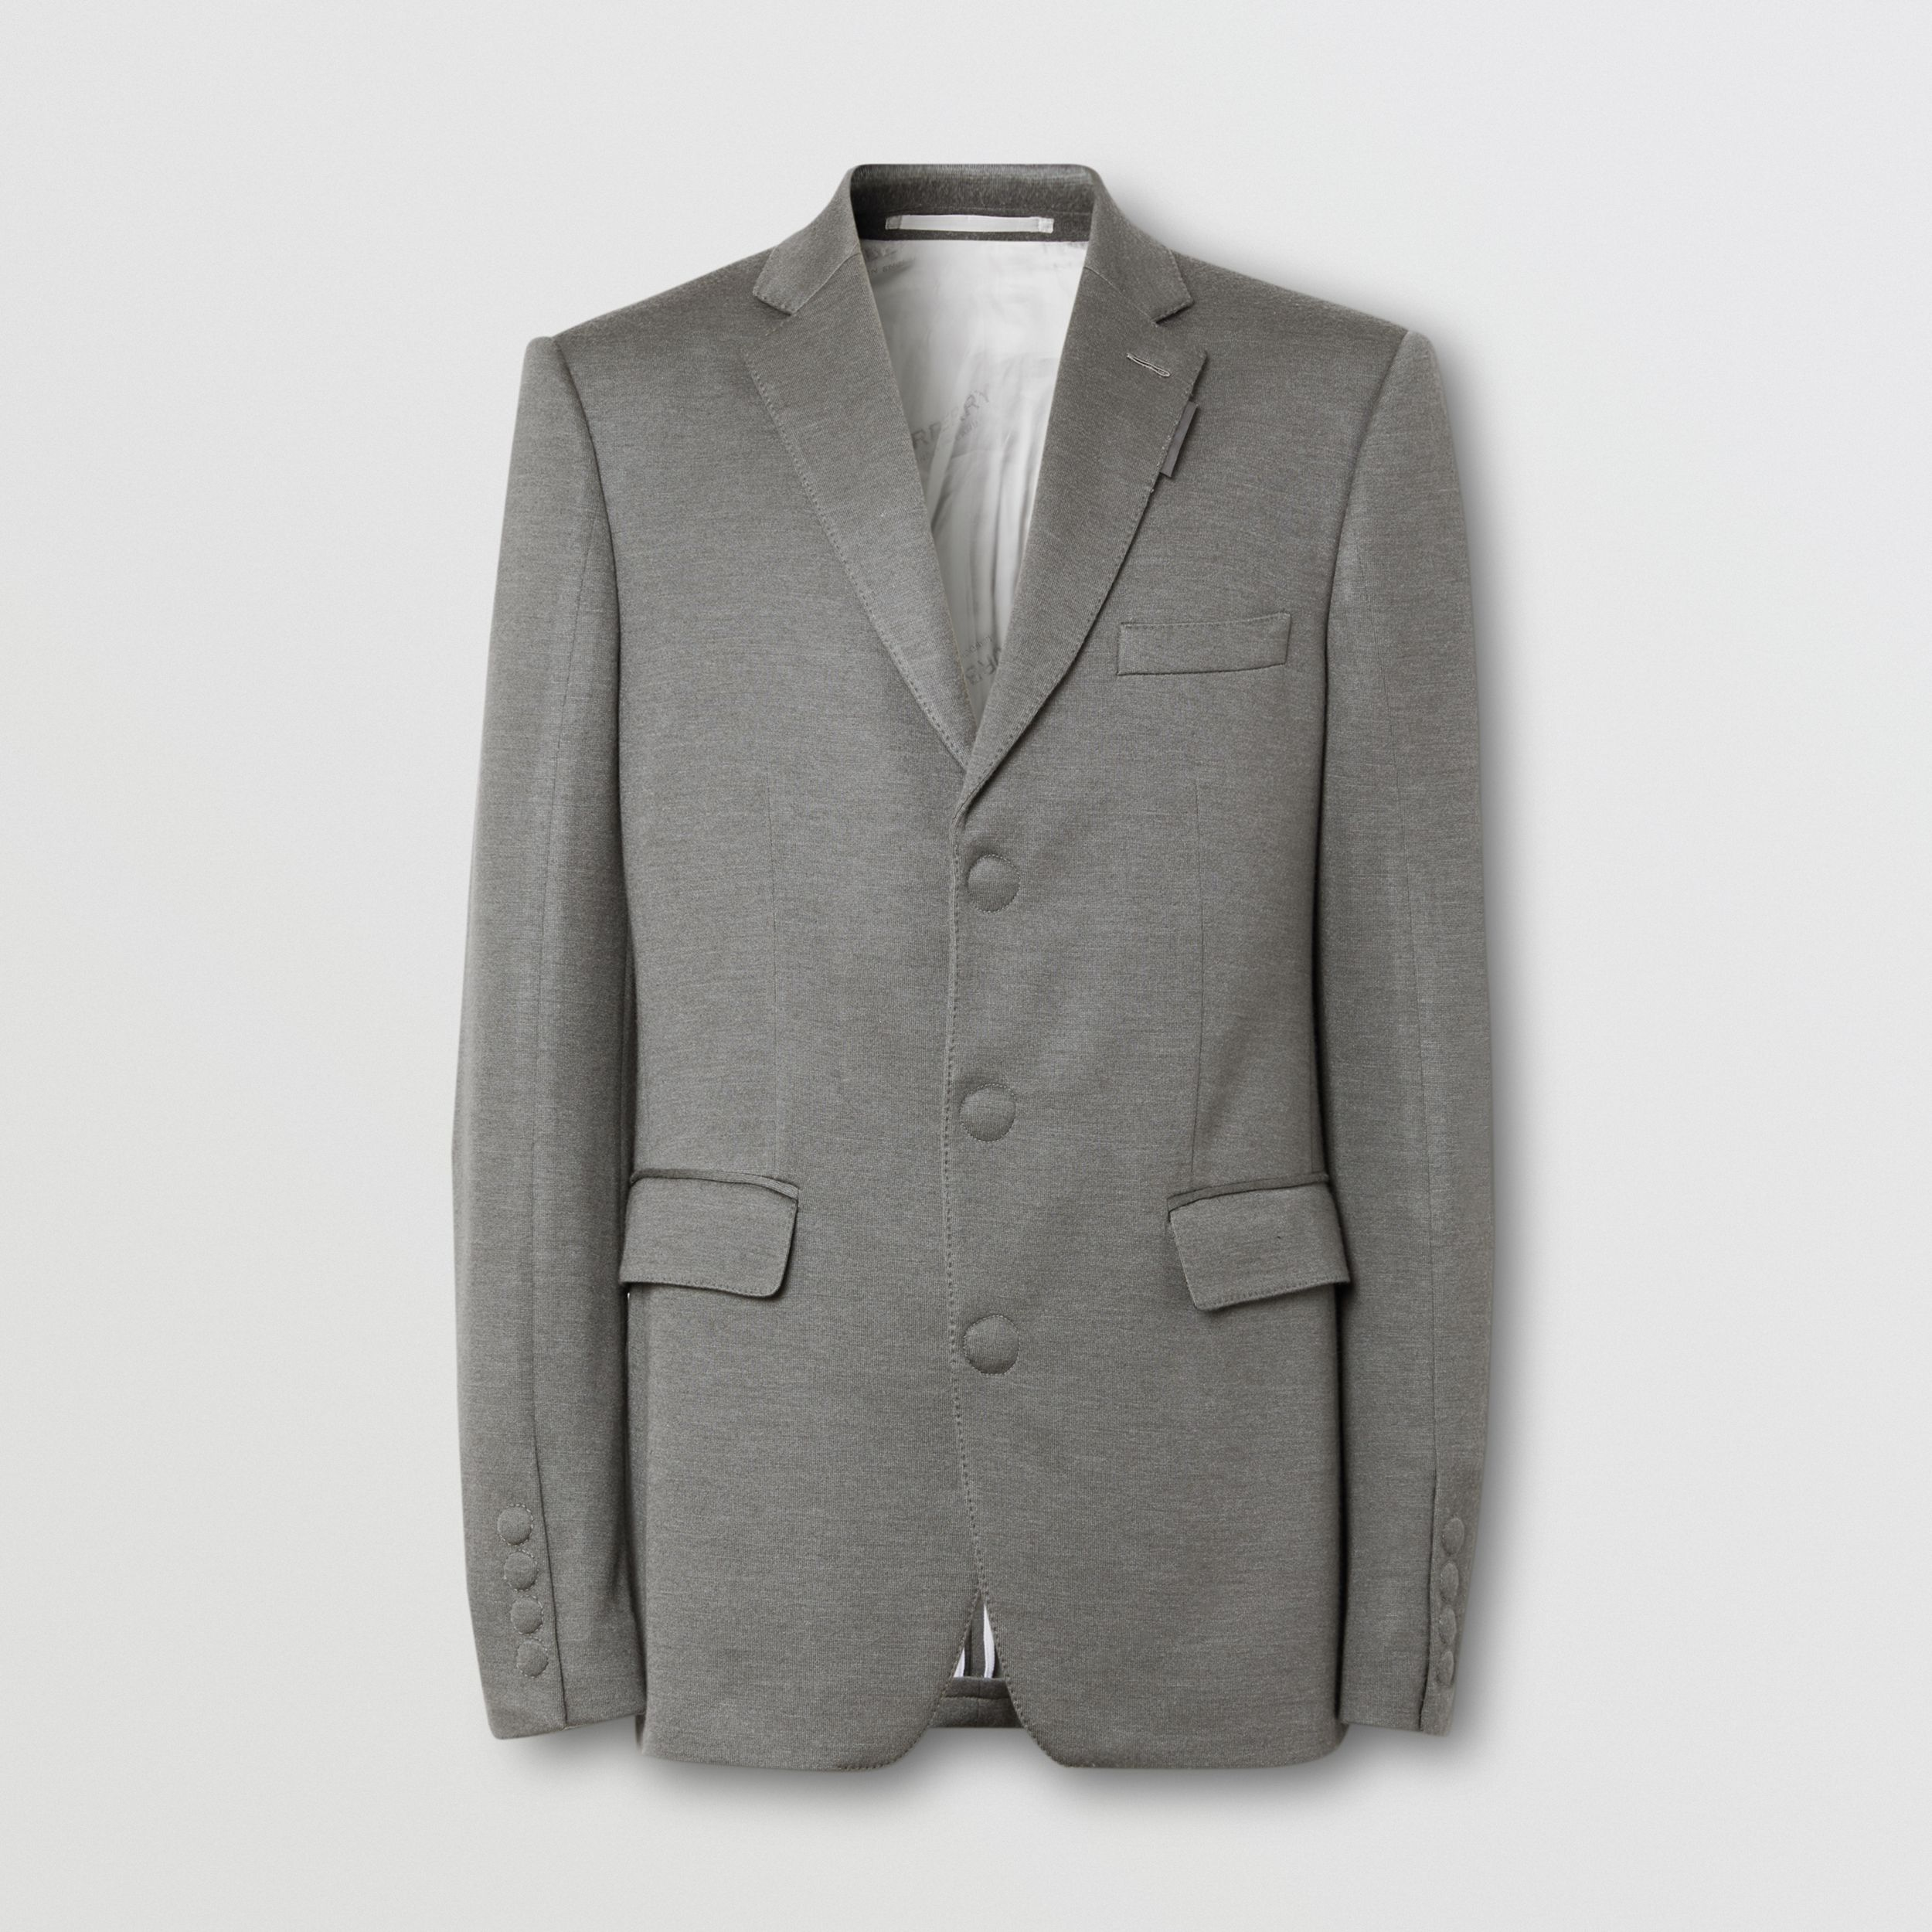 English Fit Cashmere Silk Jersey Tailored Jacket in Cloud Grey - Men | Burberry United Kingdom - 4